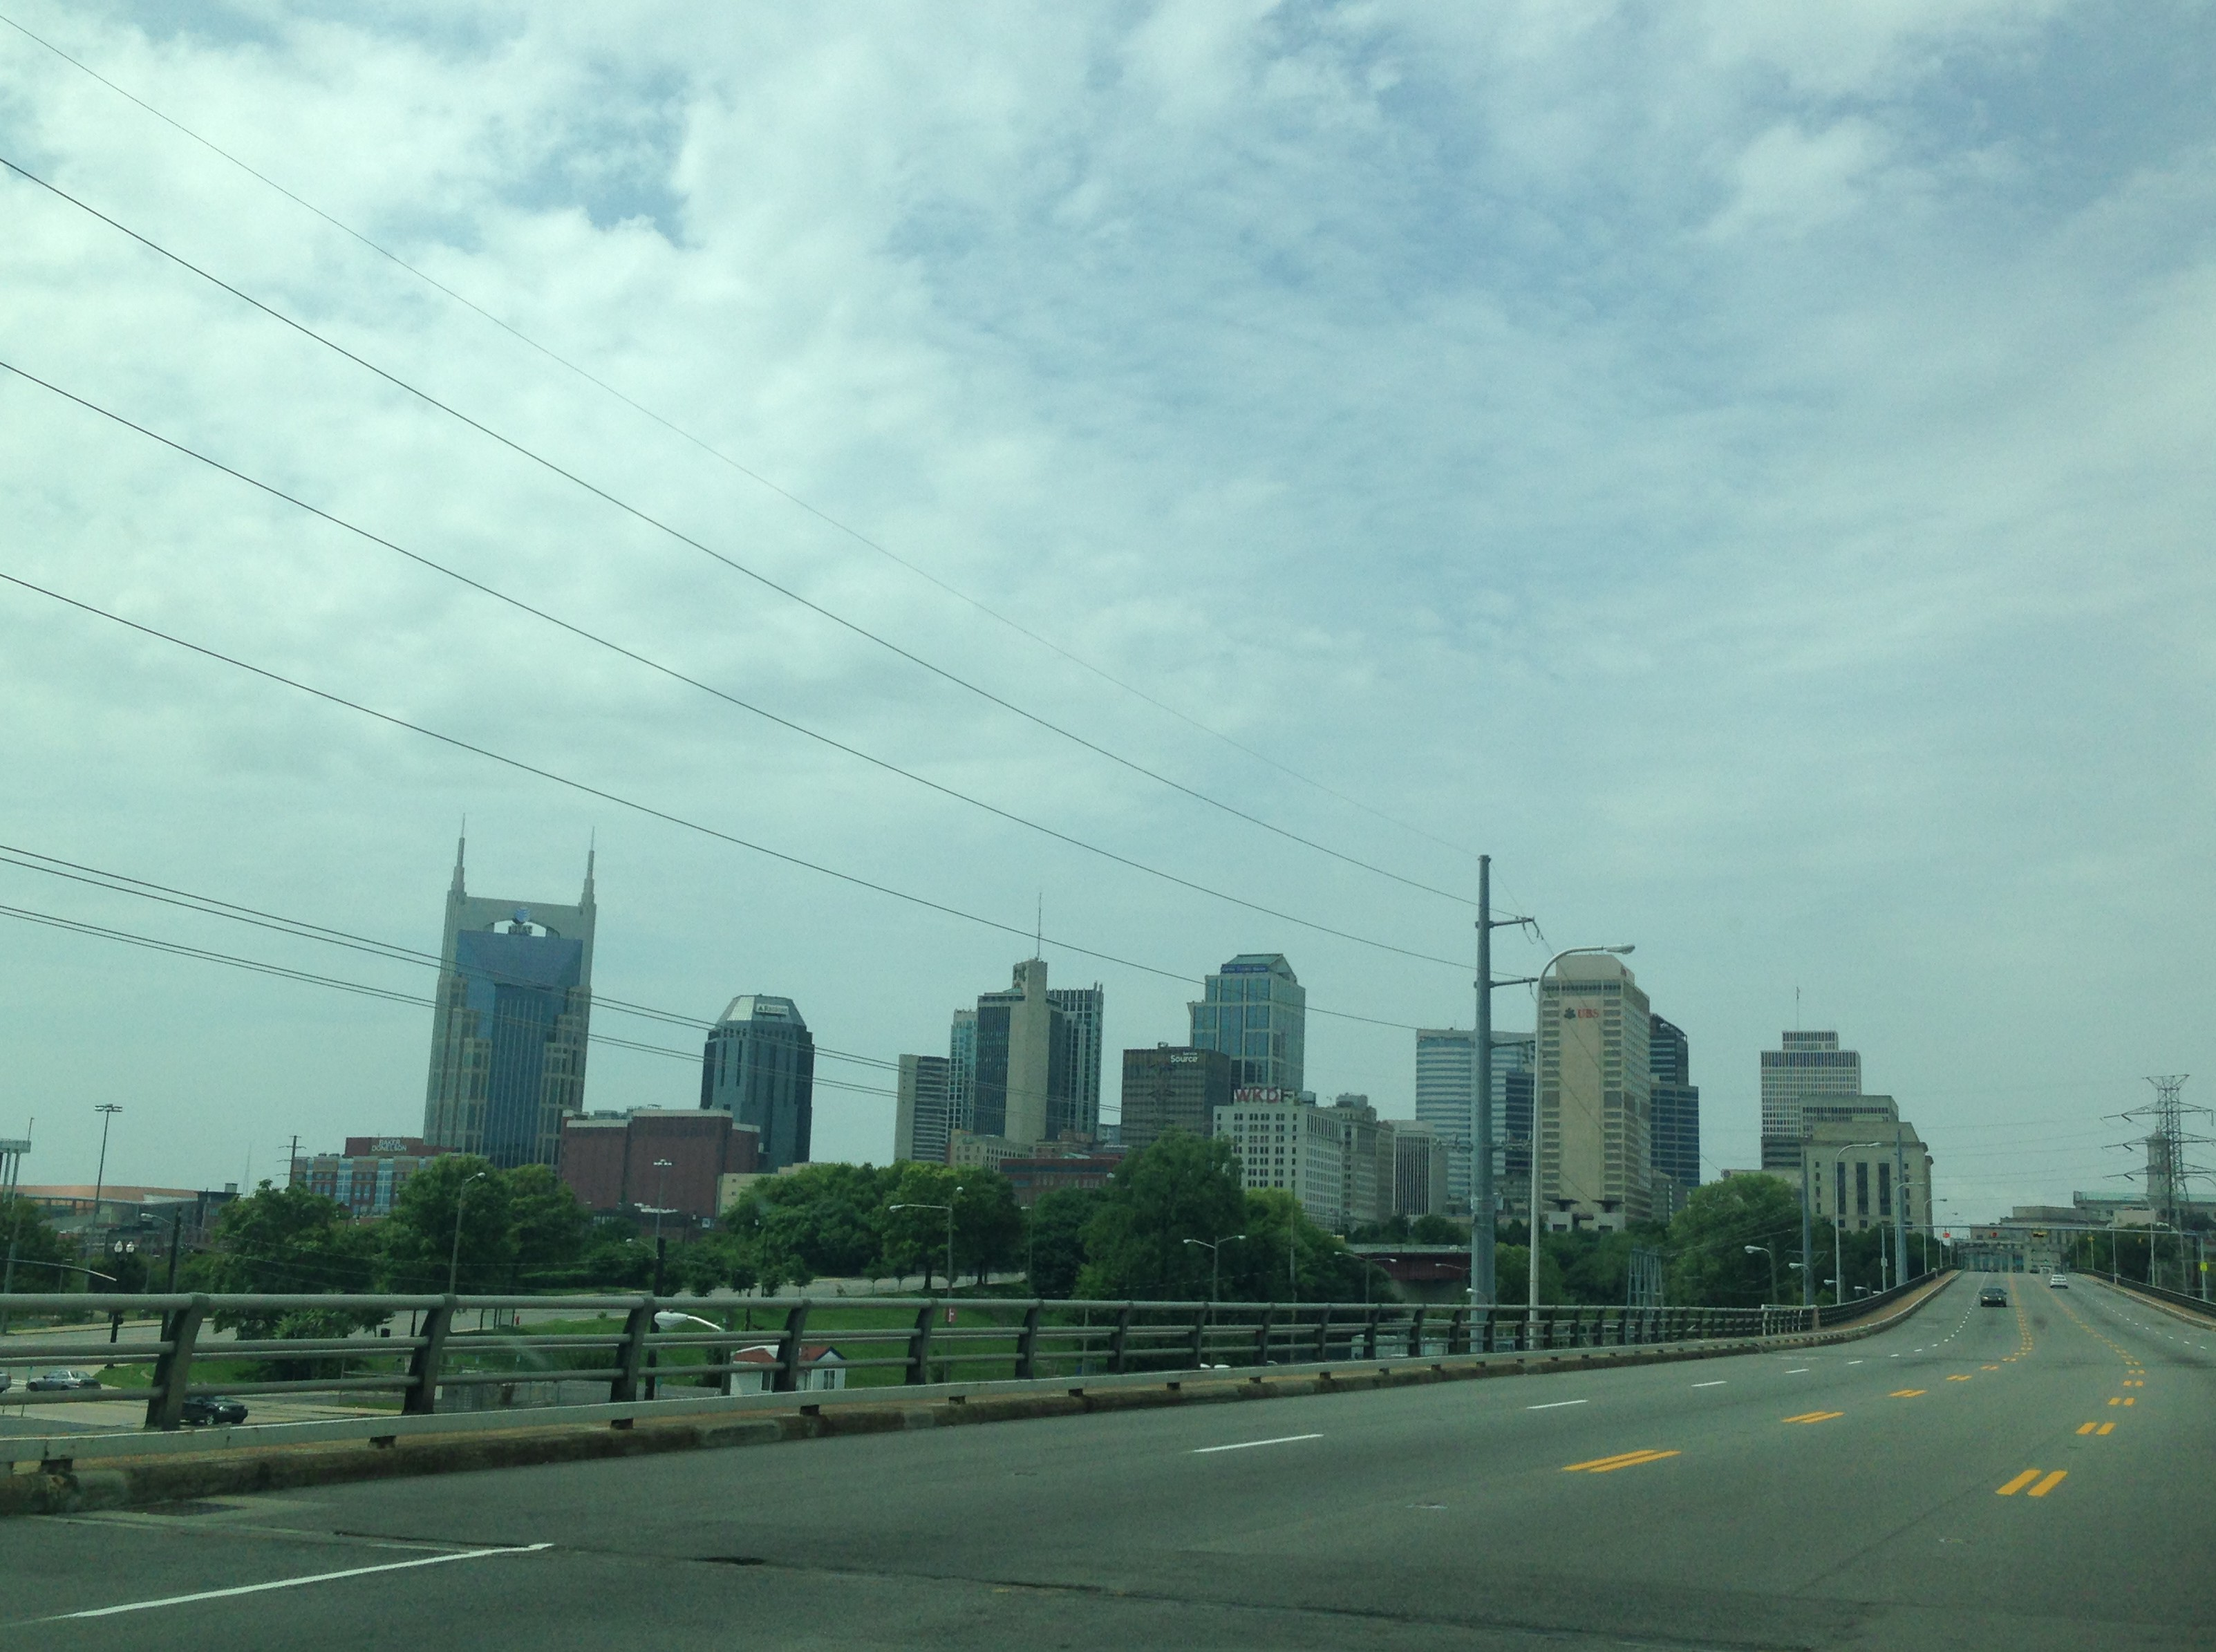 Days 84-86: Tennessee (Part 1)